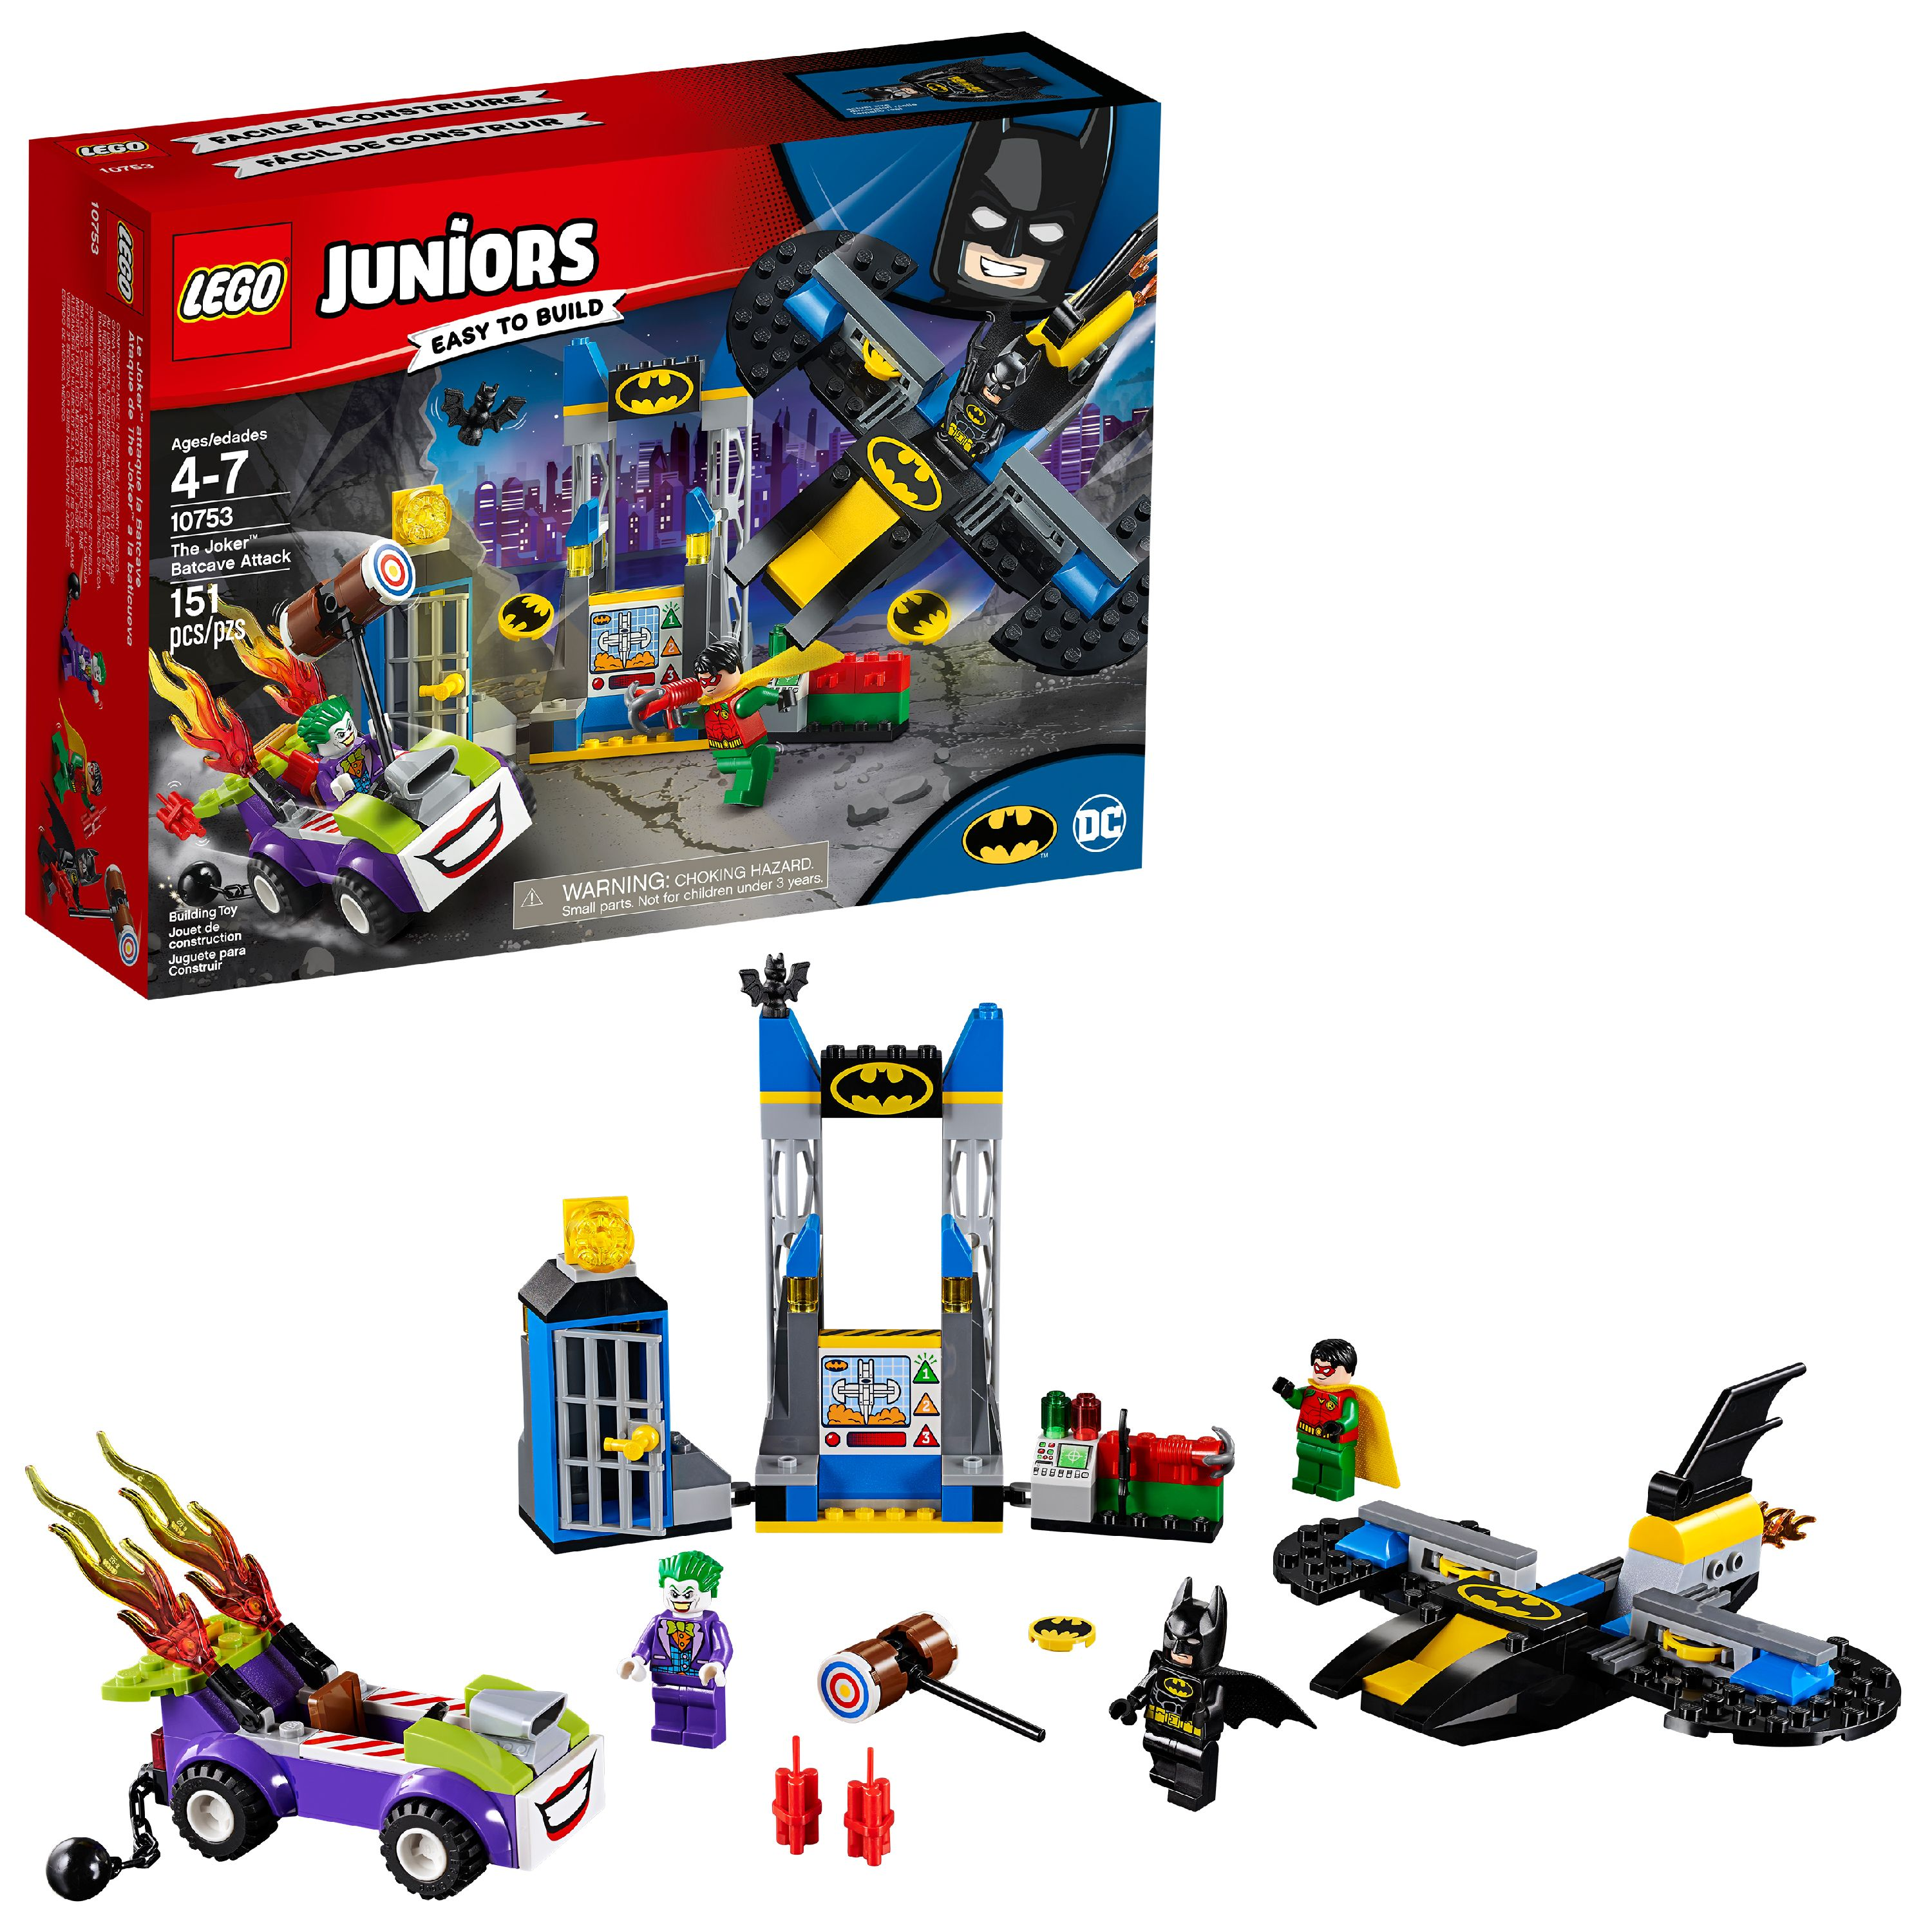 LEGO 4+ DC The Joker Batcave Attack 10753 Building Set